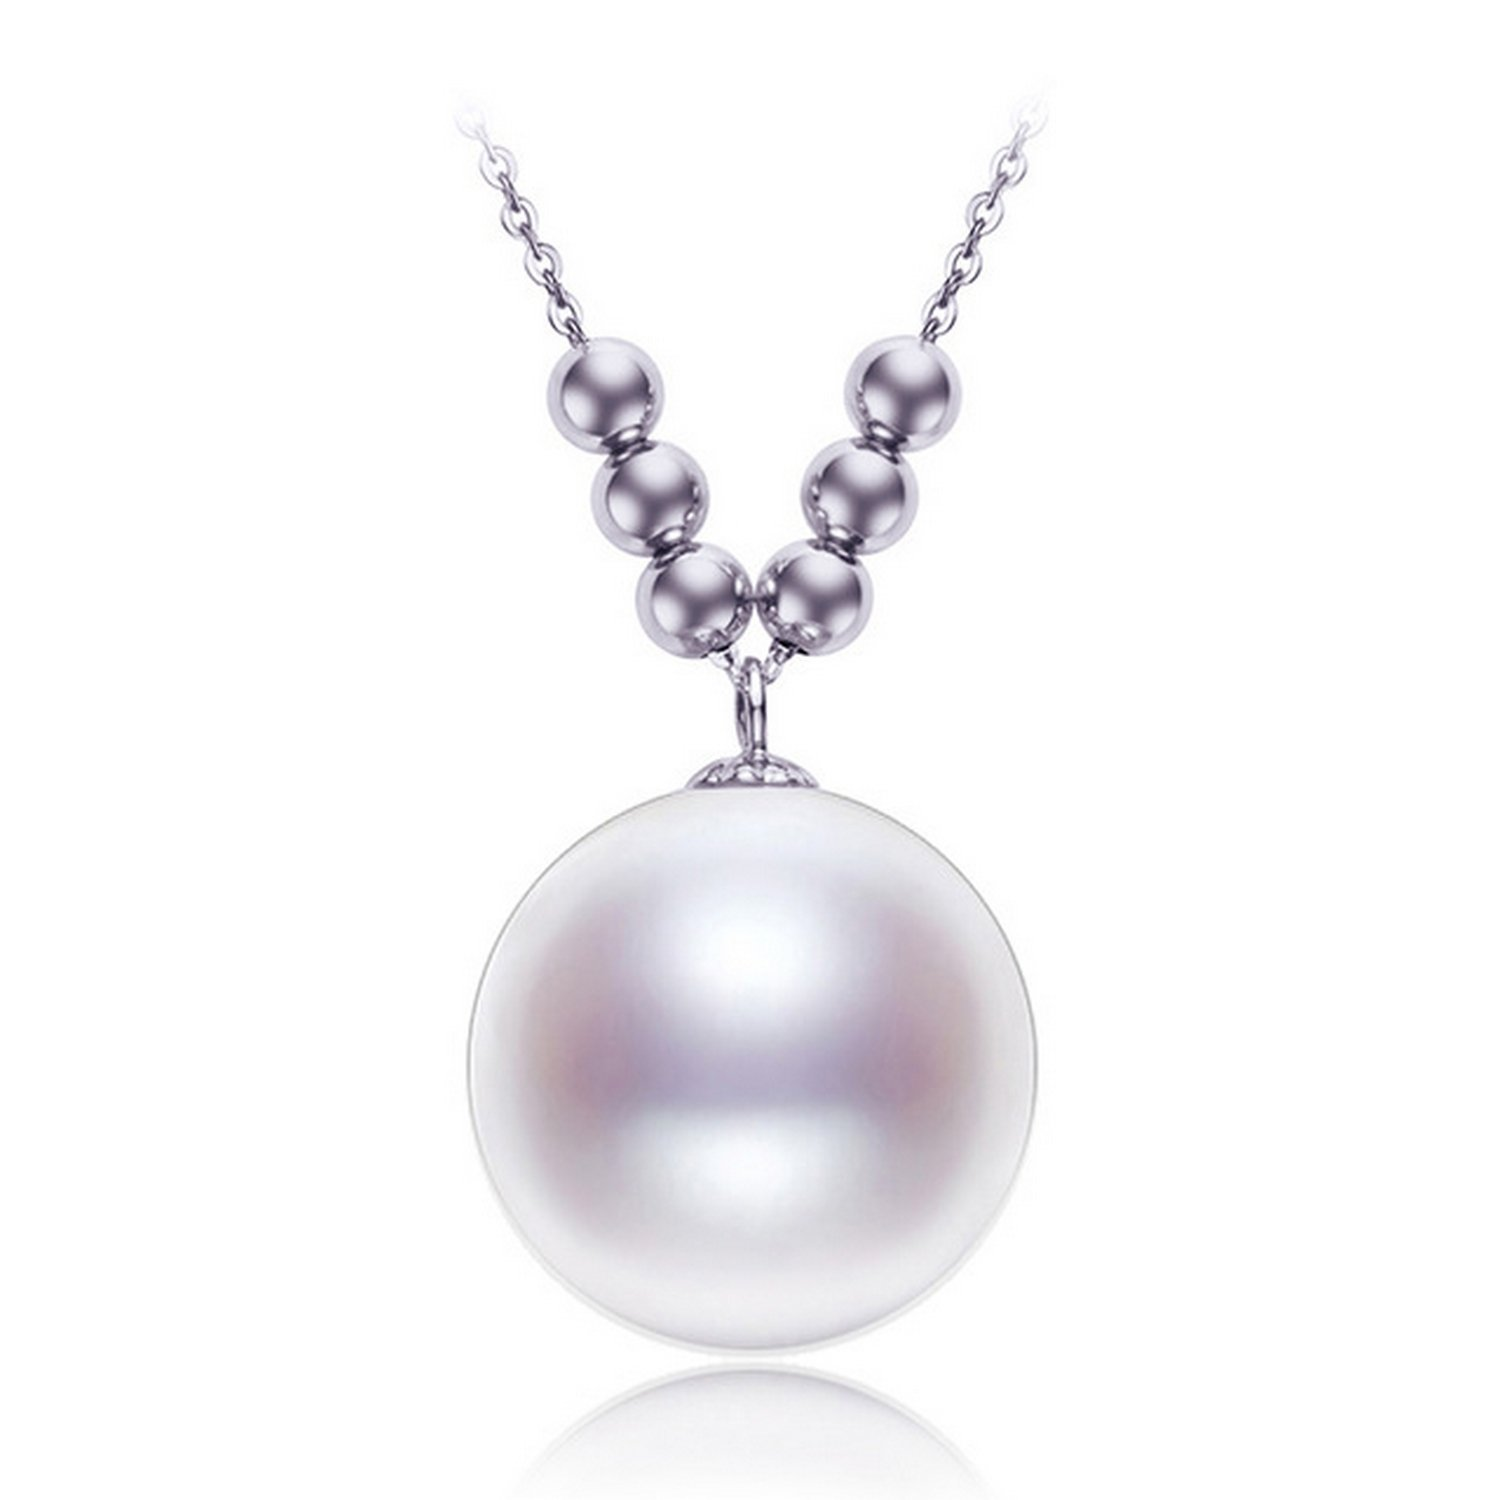 MMC Pearl Silver Pendants Necklaces